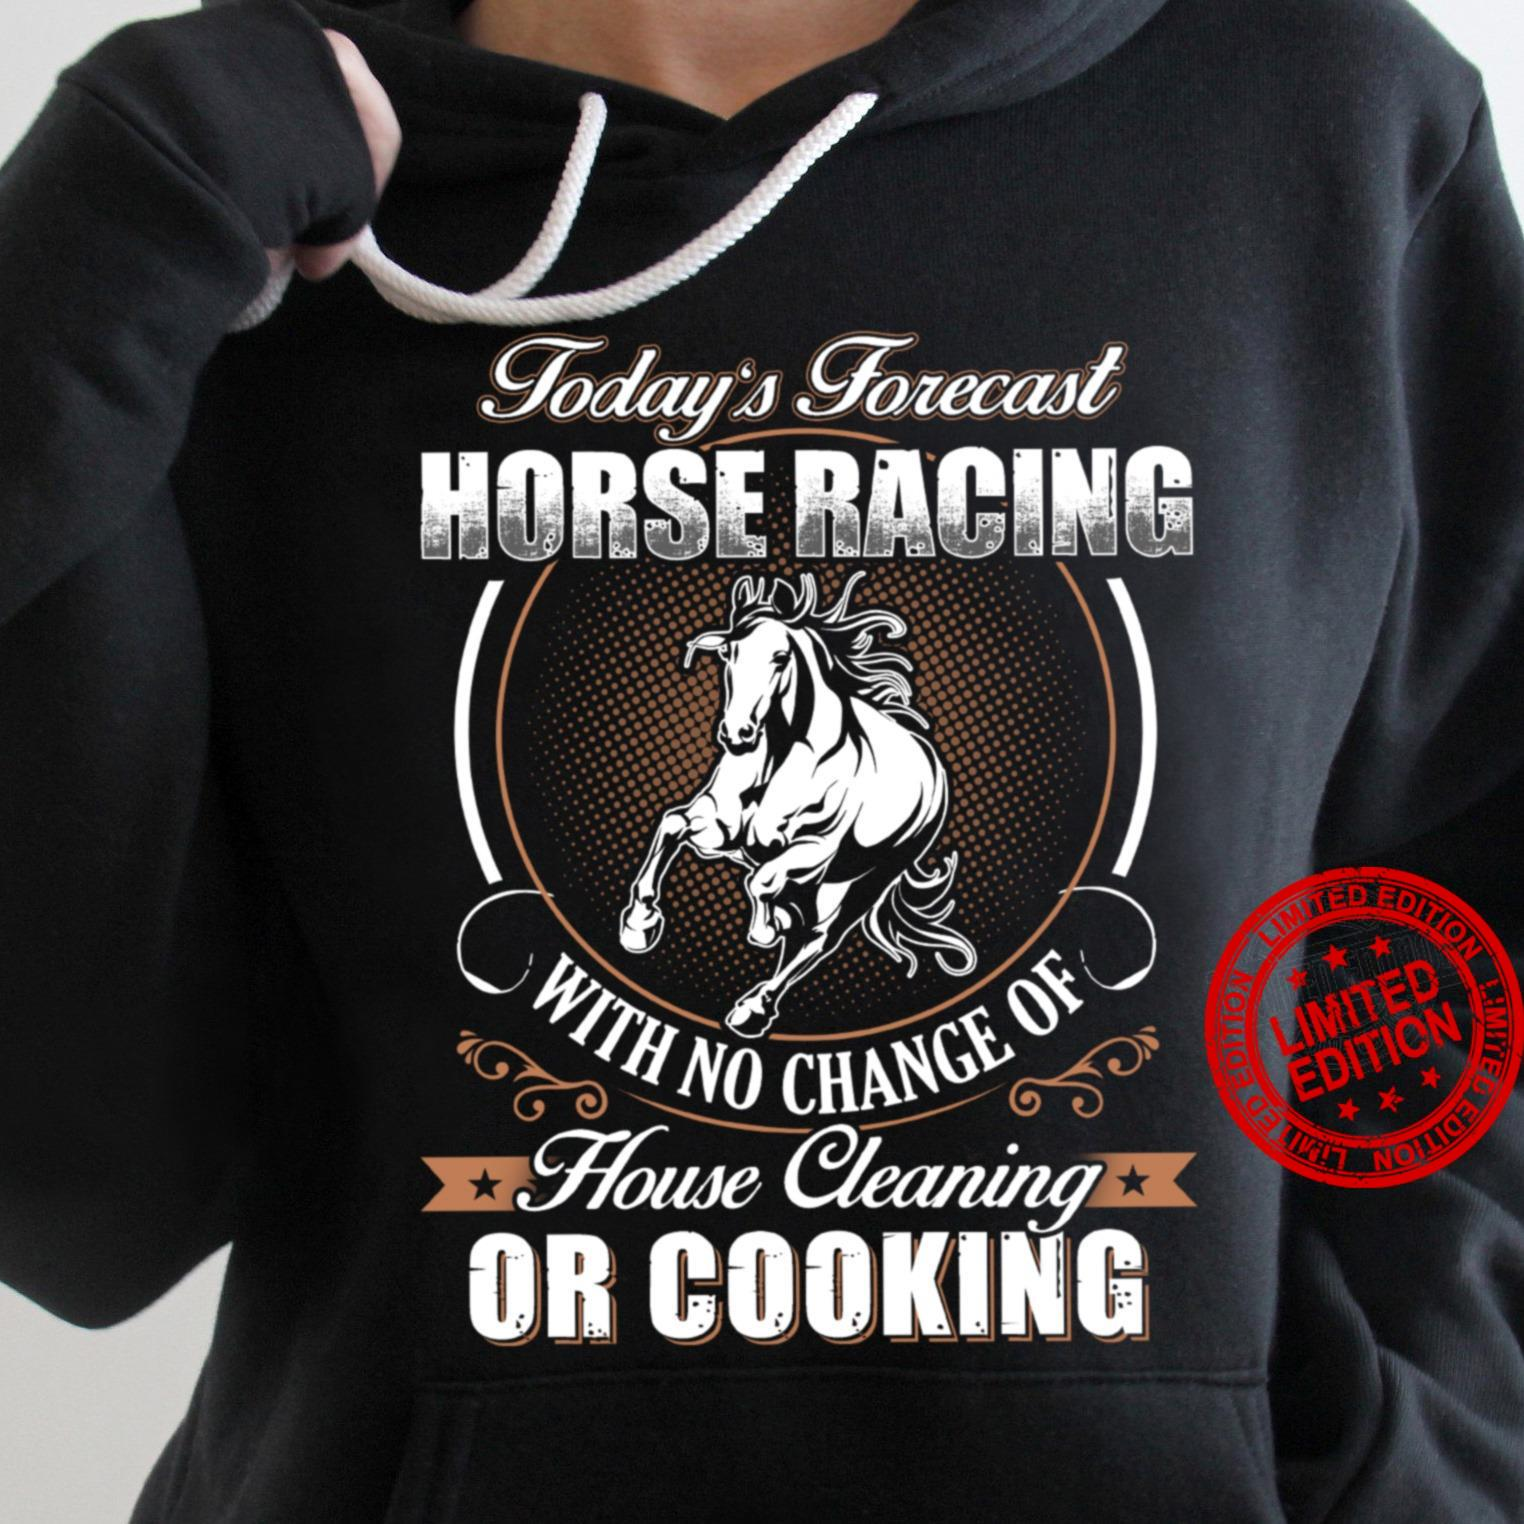 Today's Forcast Horse Racing With No Change Of House Cleaning Or Cooking Shirt